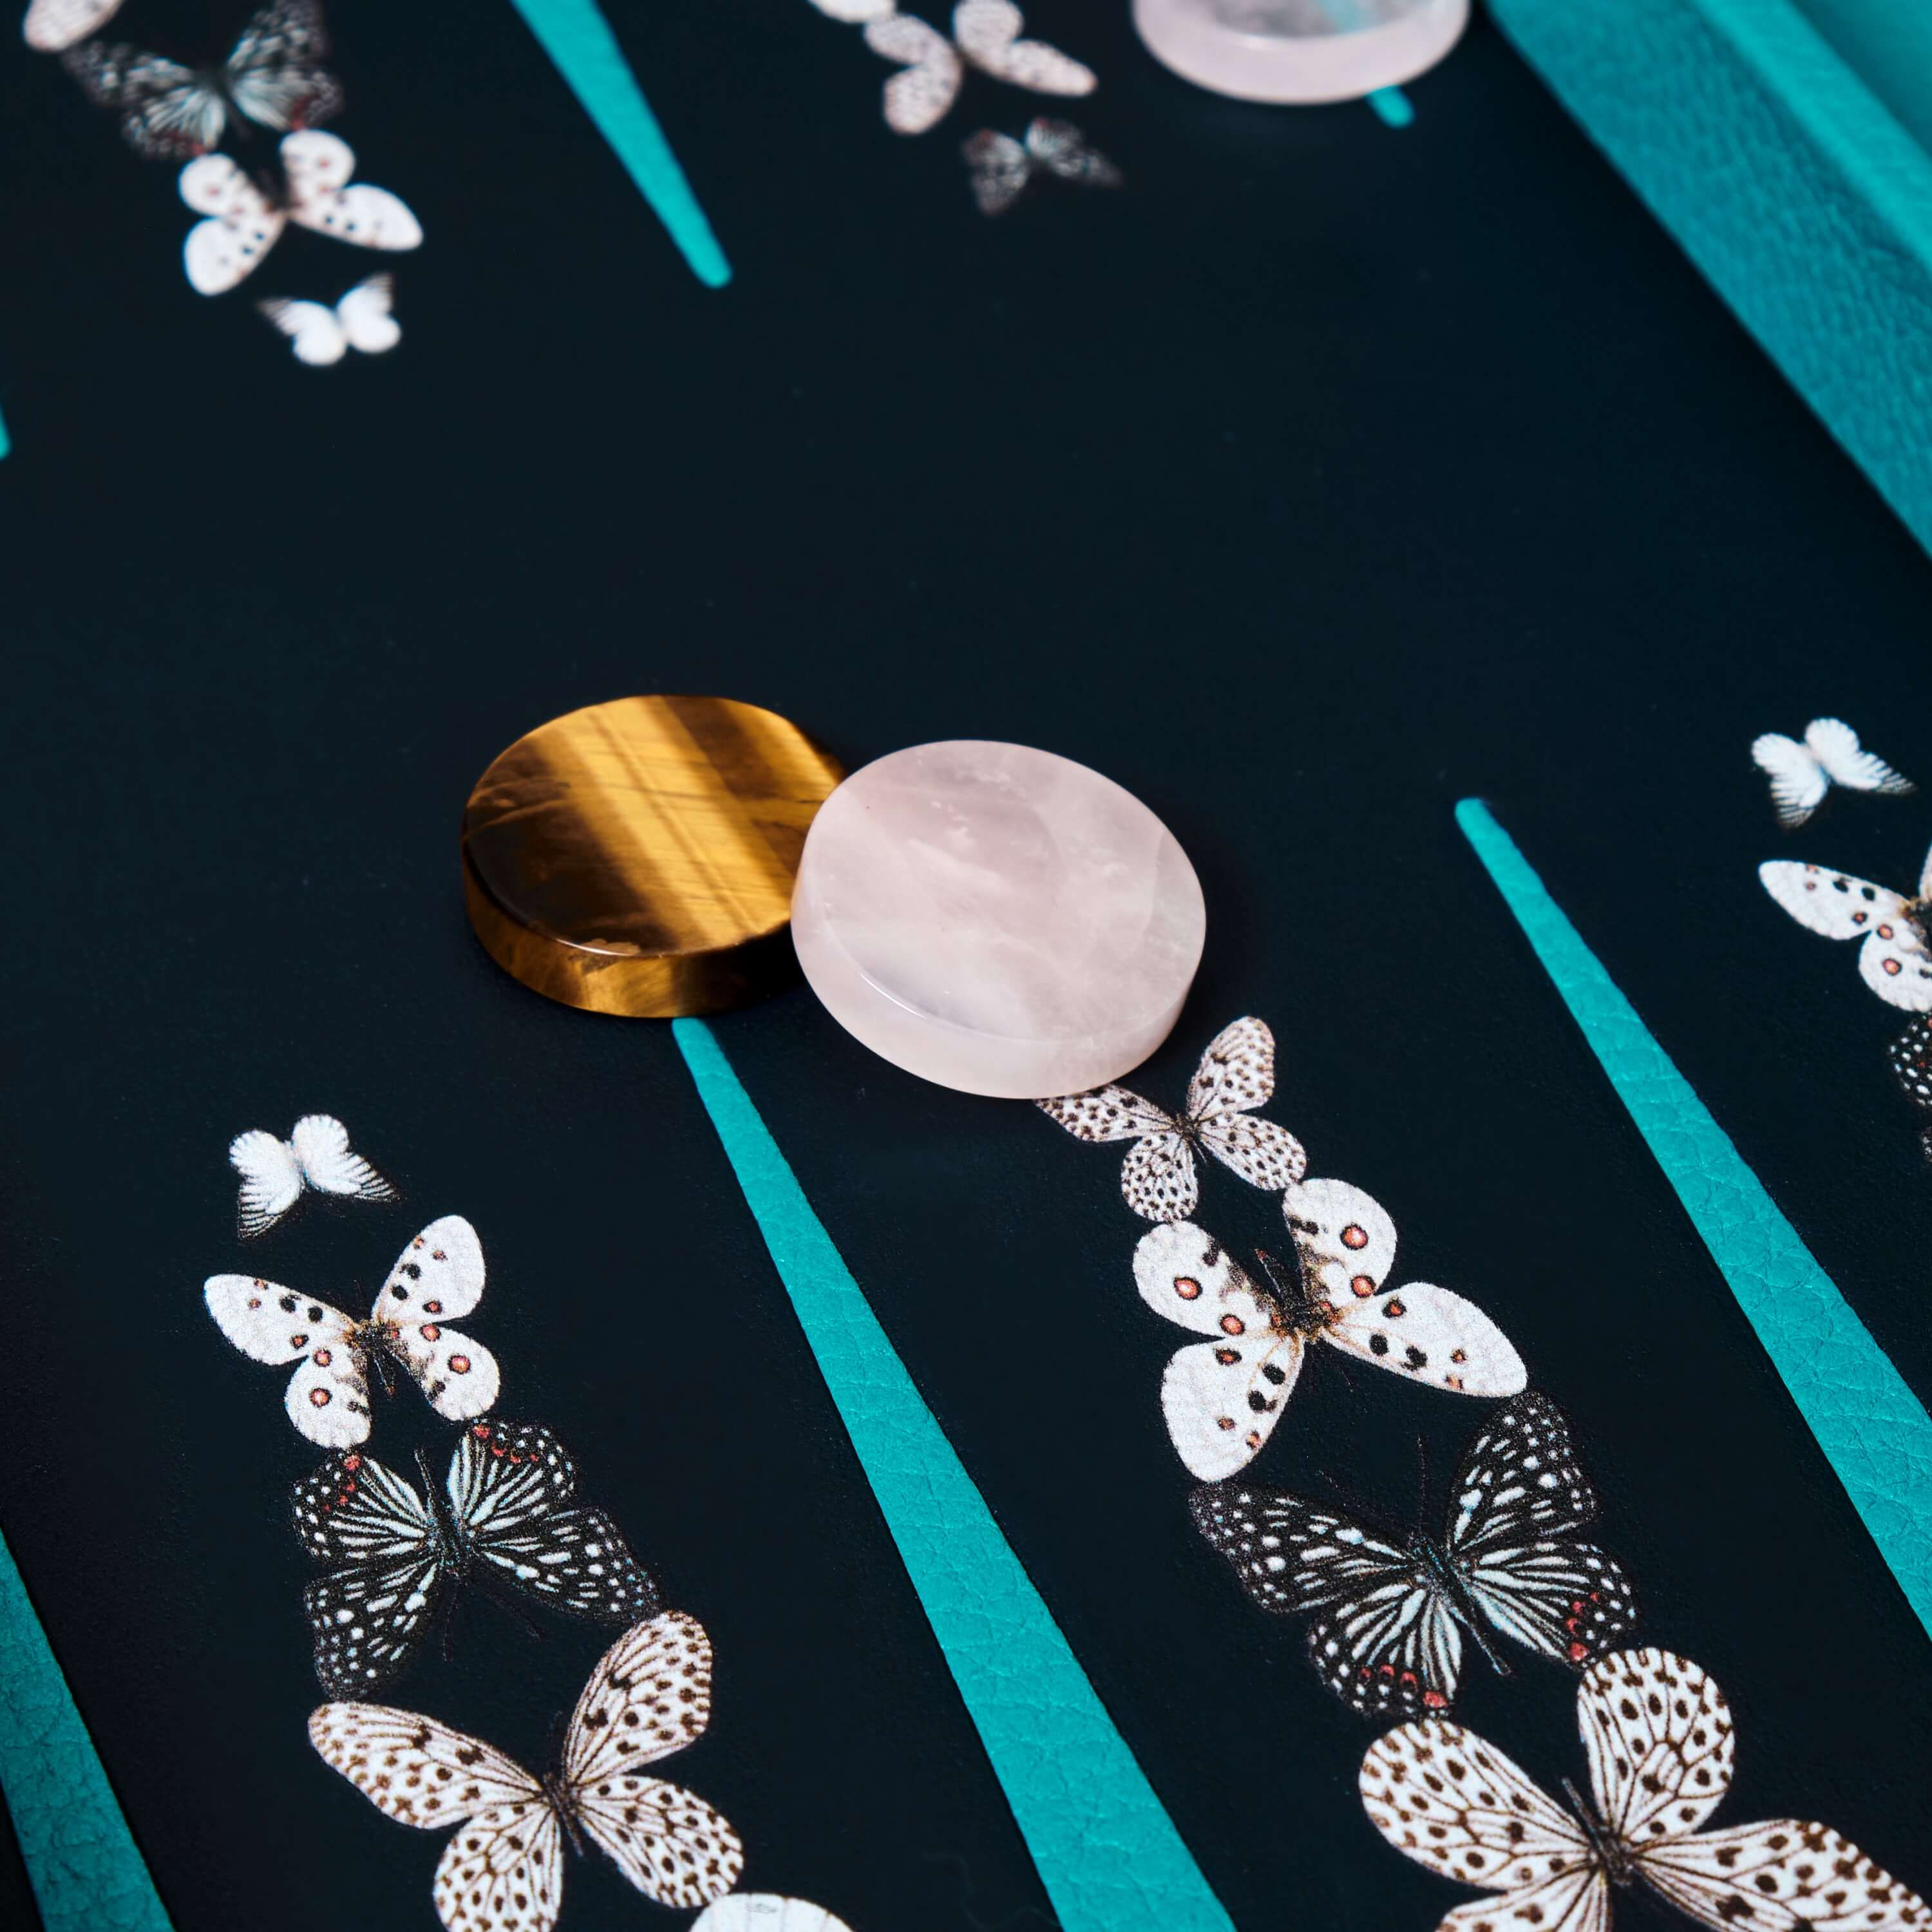 black and white butterfly travel backgammon set with rose quartz and tiger eye playing pieces